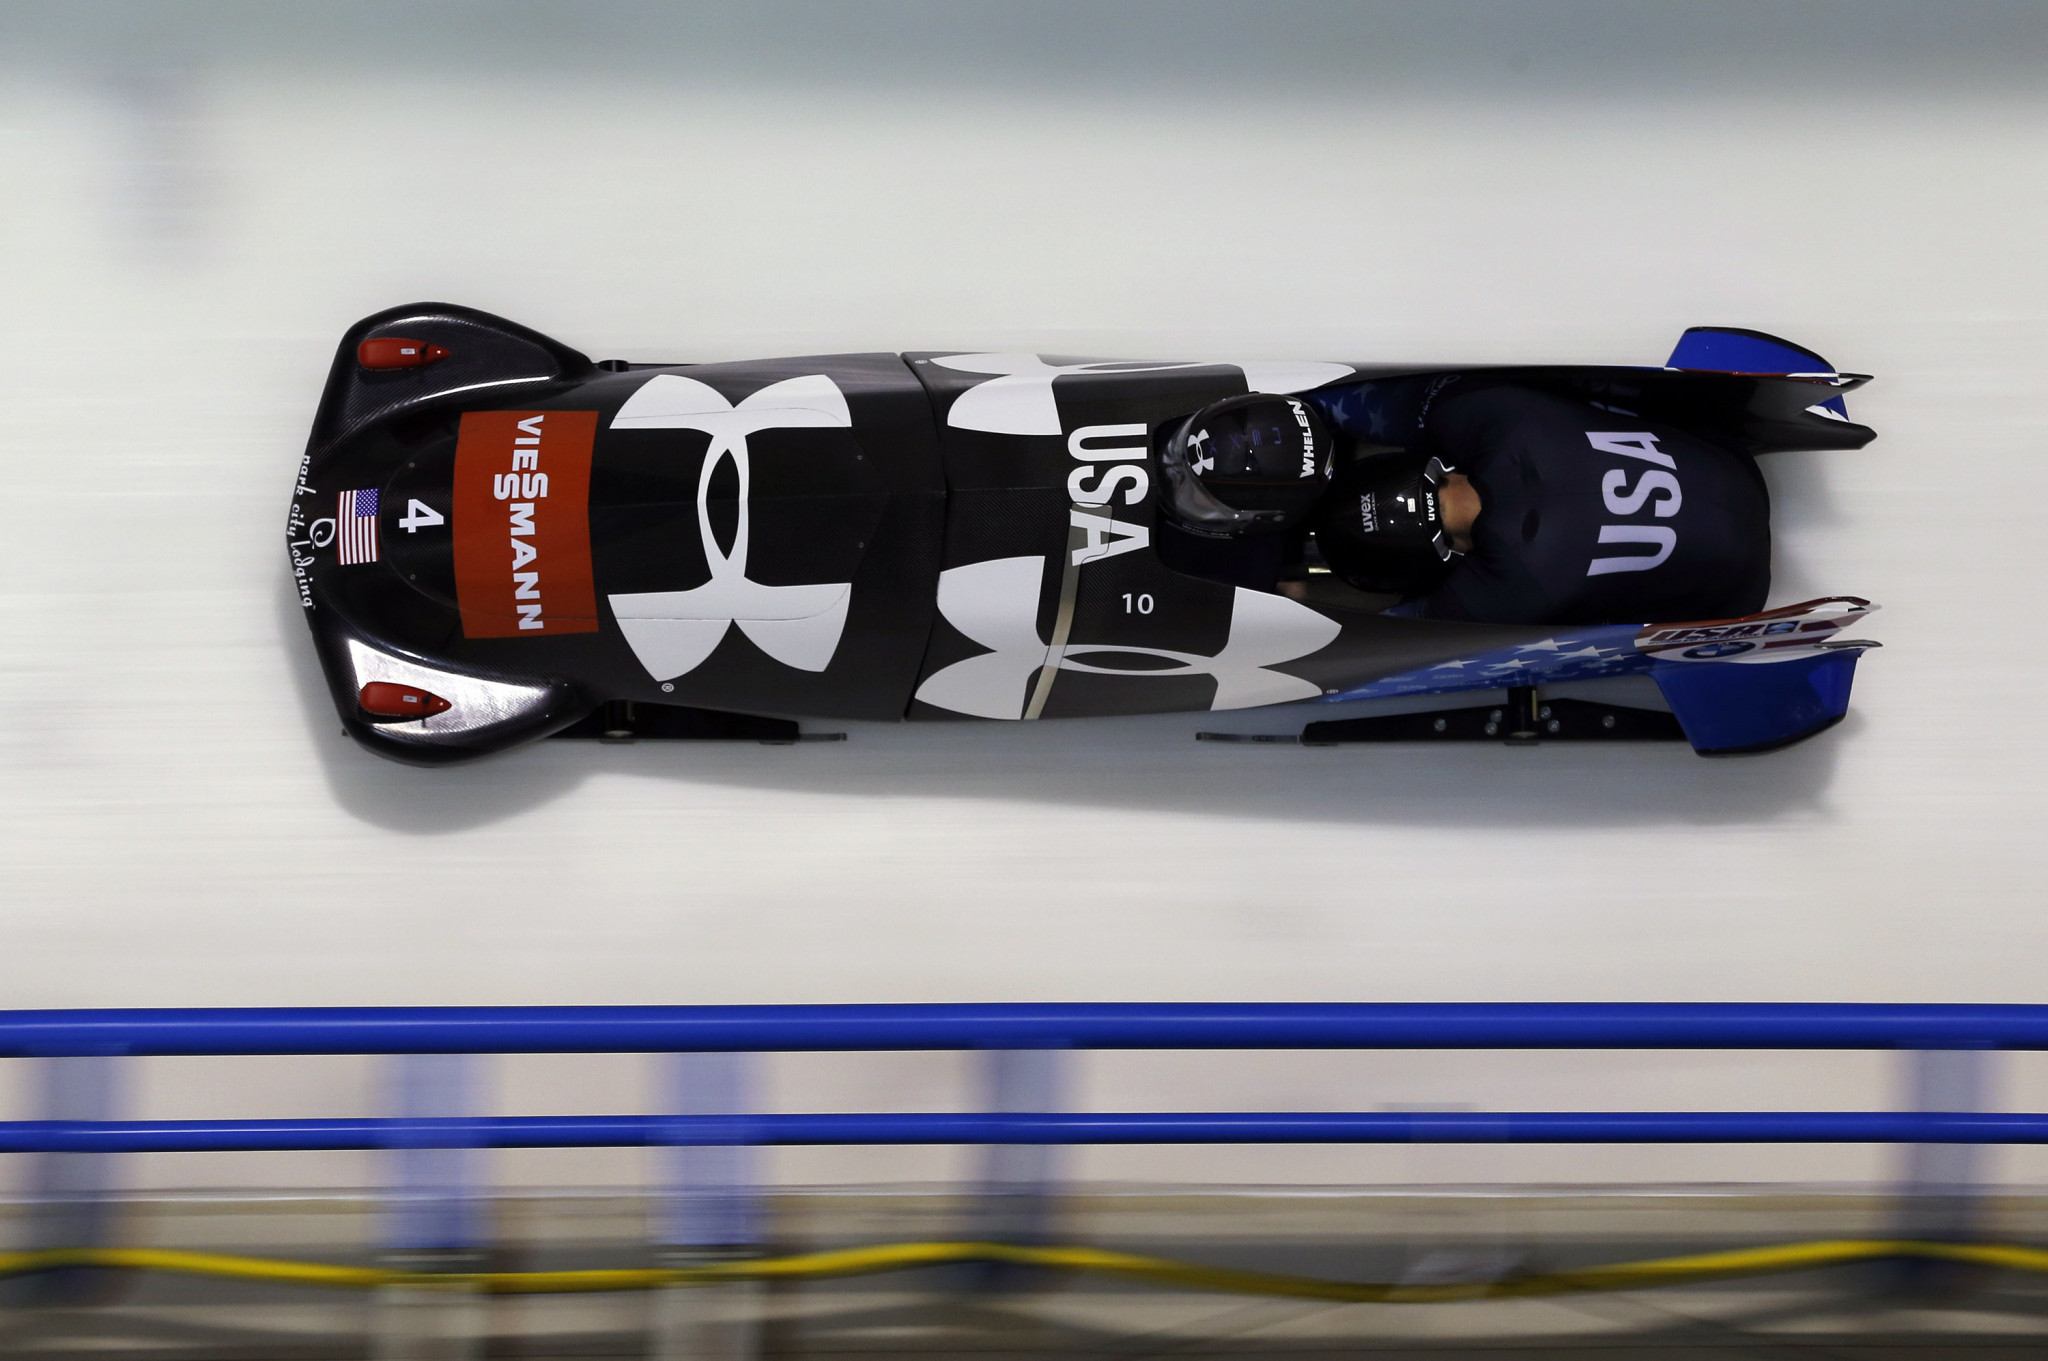 Homologation process for Beijing 2022 bobsleigh track delayed due to coronavirus